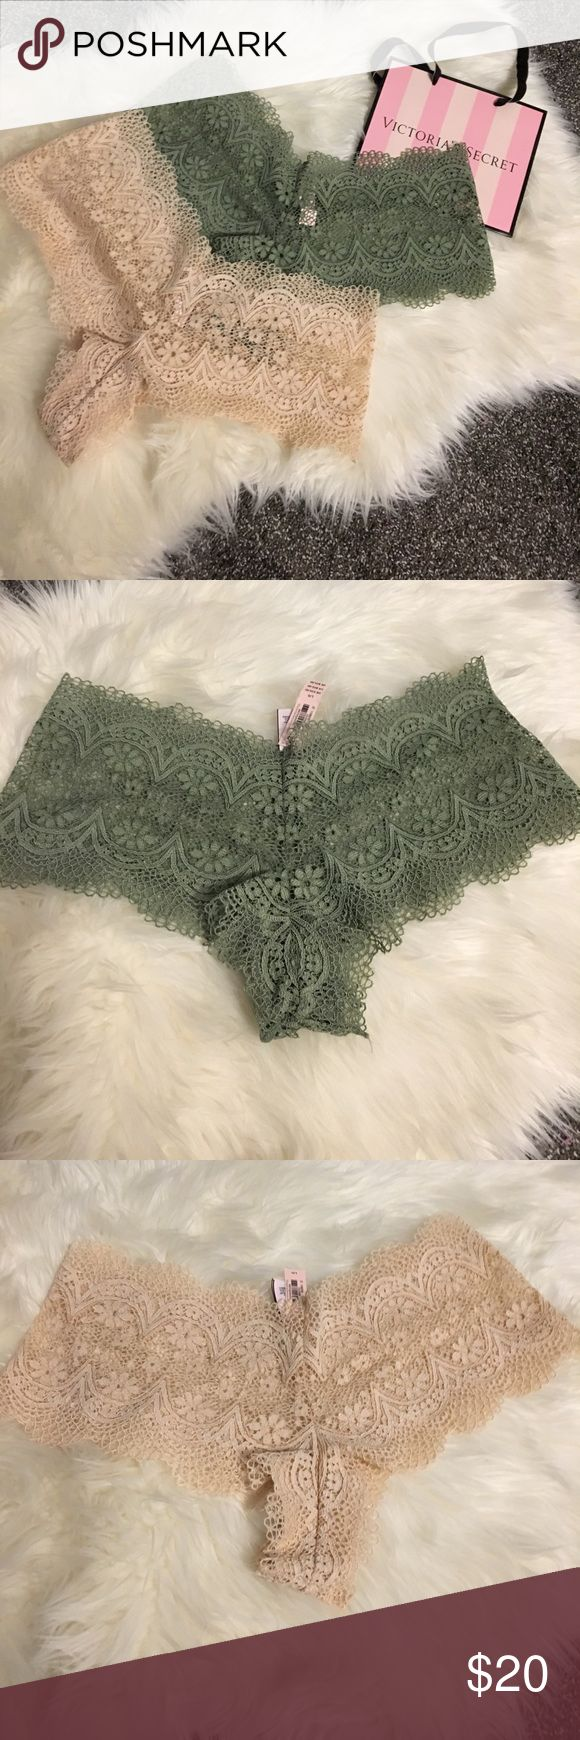 VS boyshort pantie bundle NWT olive and creme boyshort lace panties open to reasonable offers, no trades Victoria's Secret Intimates & Sleepwear Panties